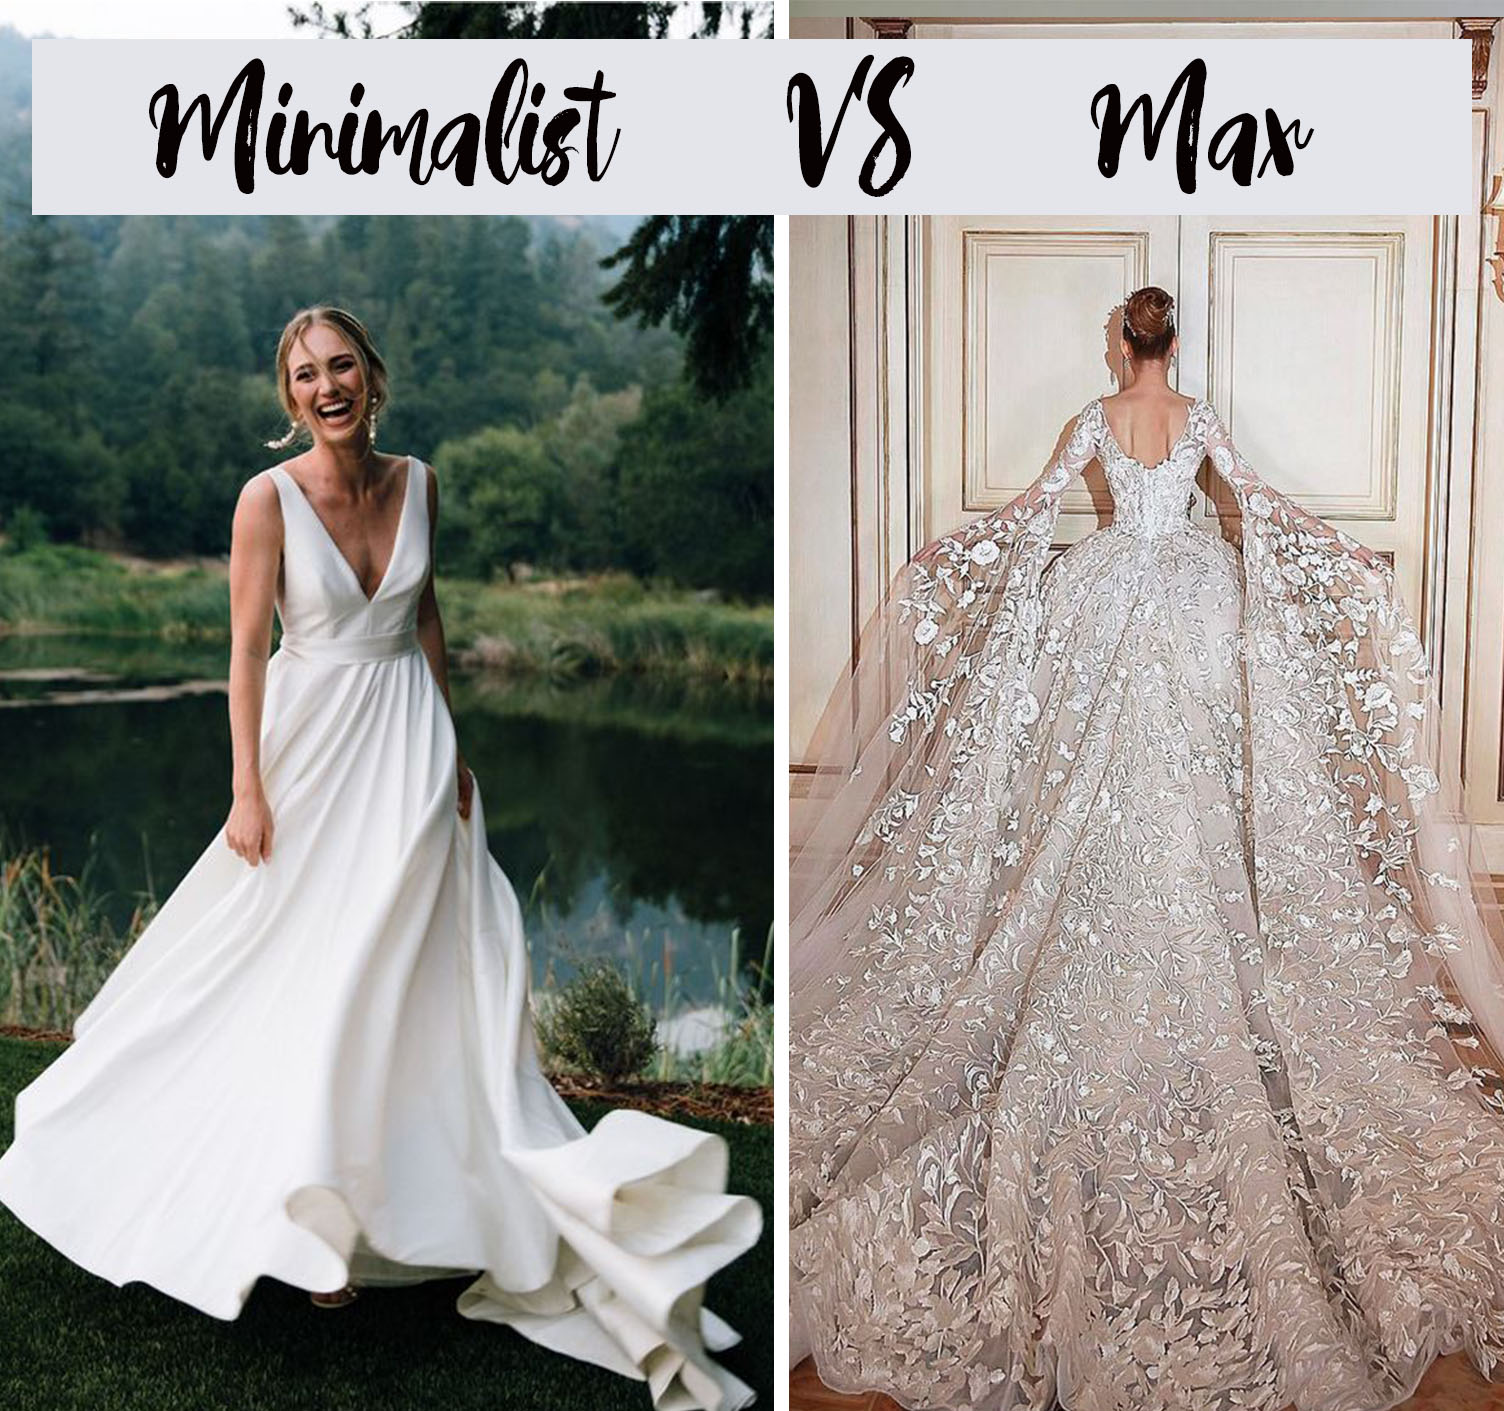 minimalist vs max wedding dress